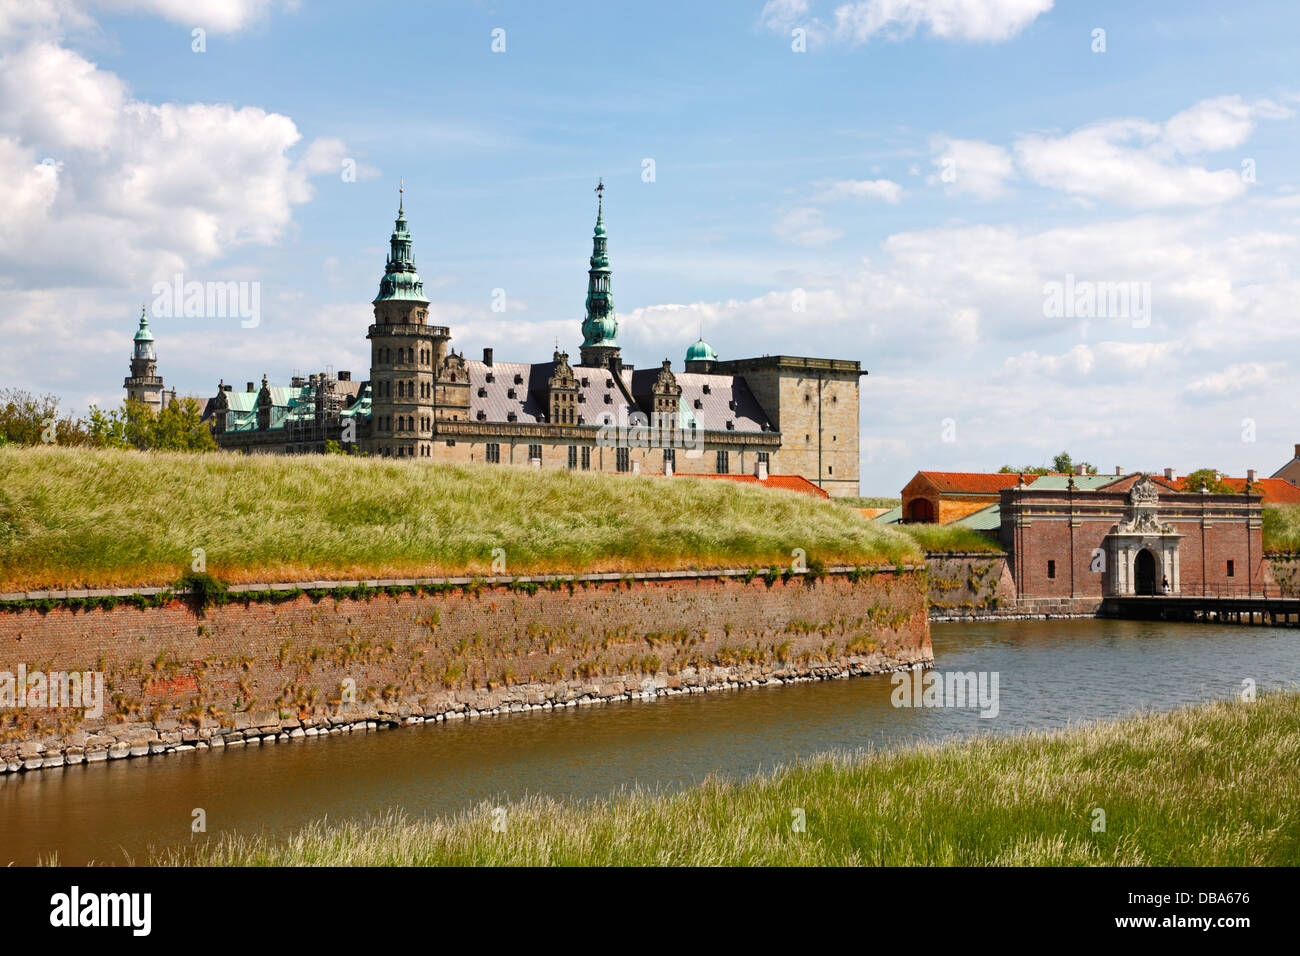 The  renaissance castle Kronborg in Elsinore, Denmark, with the main entrance and the protecting moat in the foreground. - Stock Image